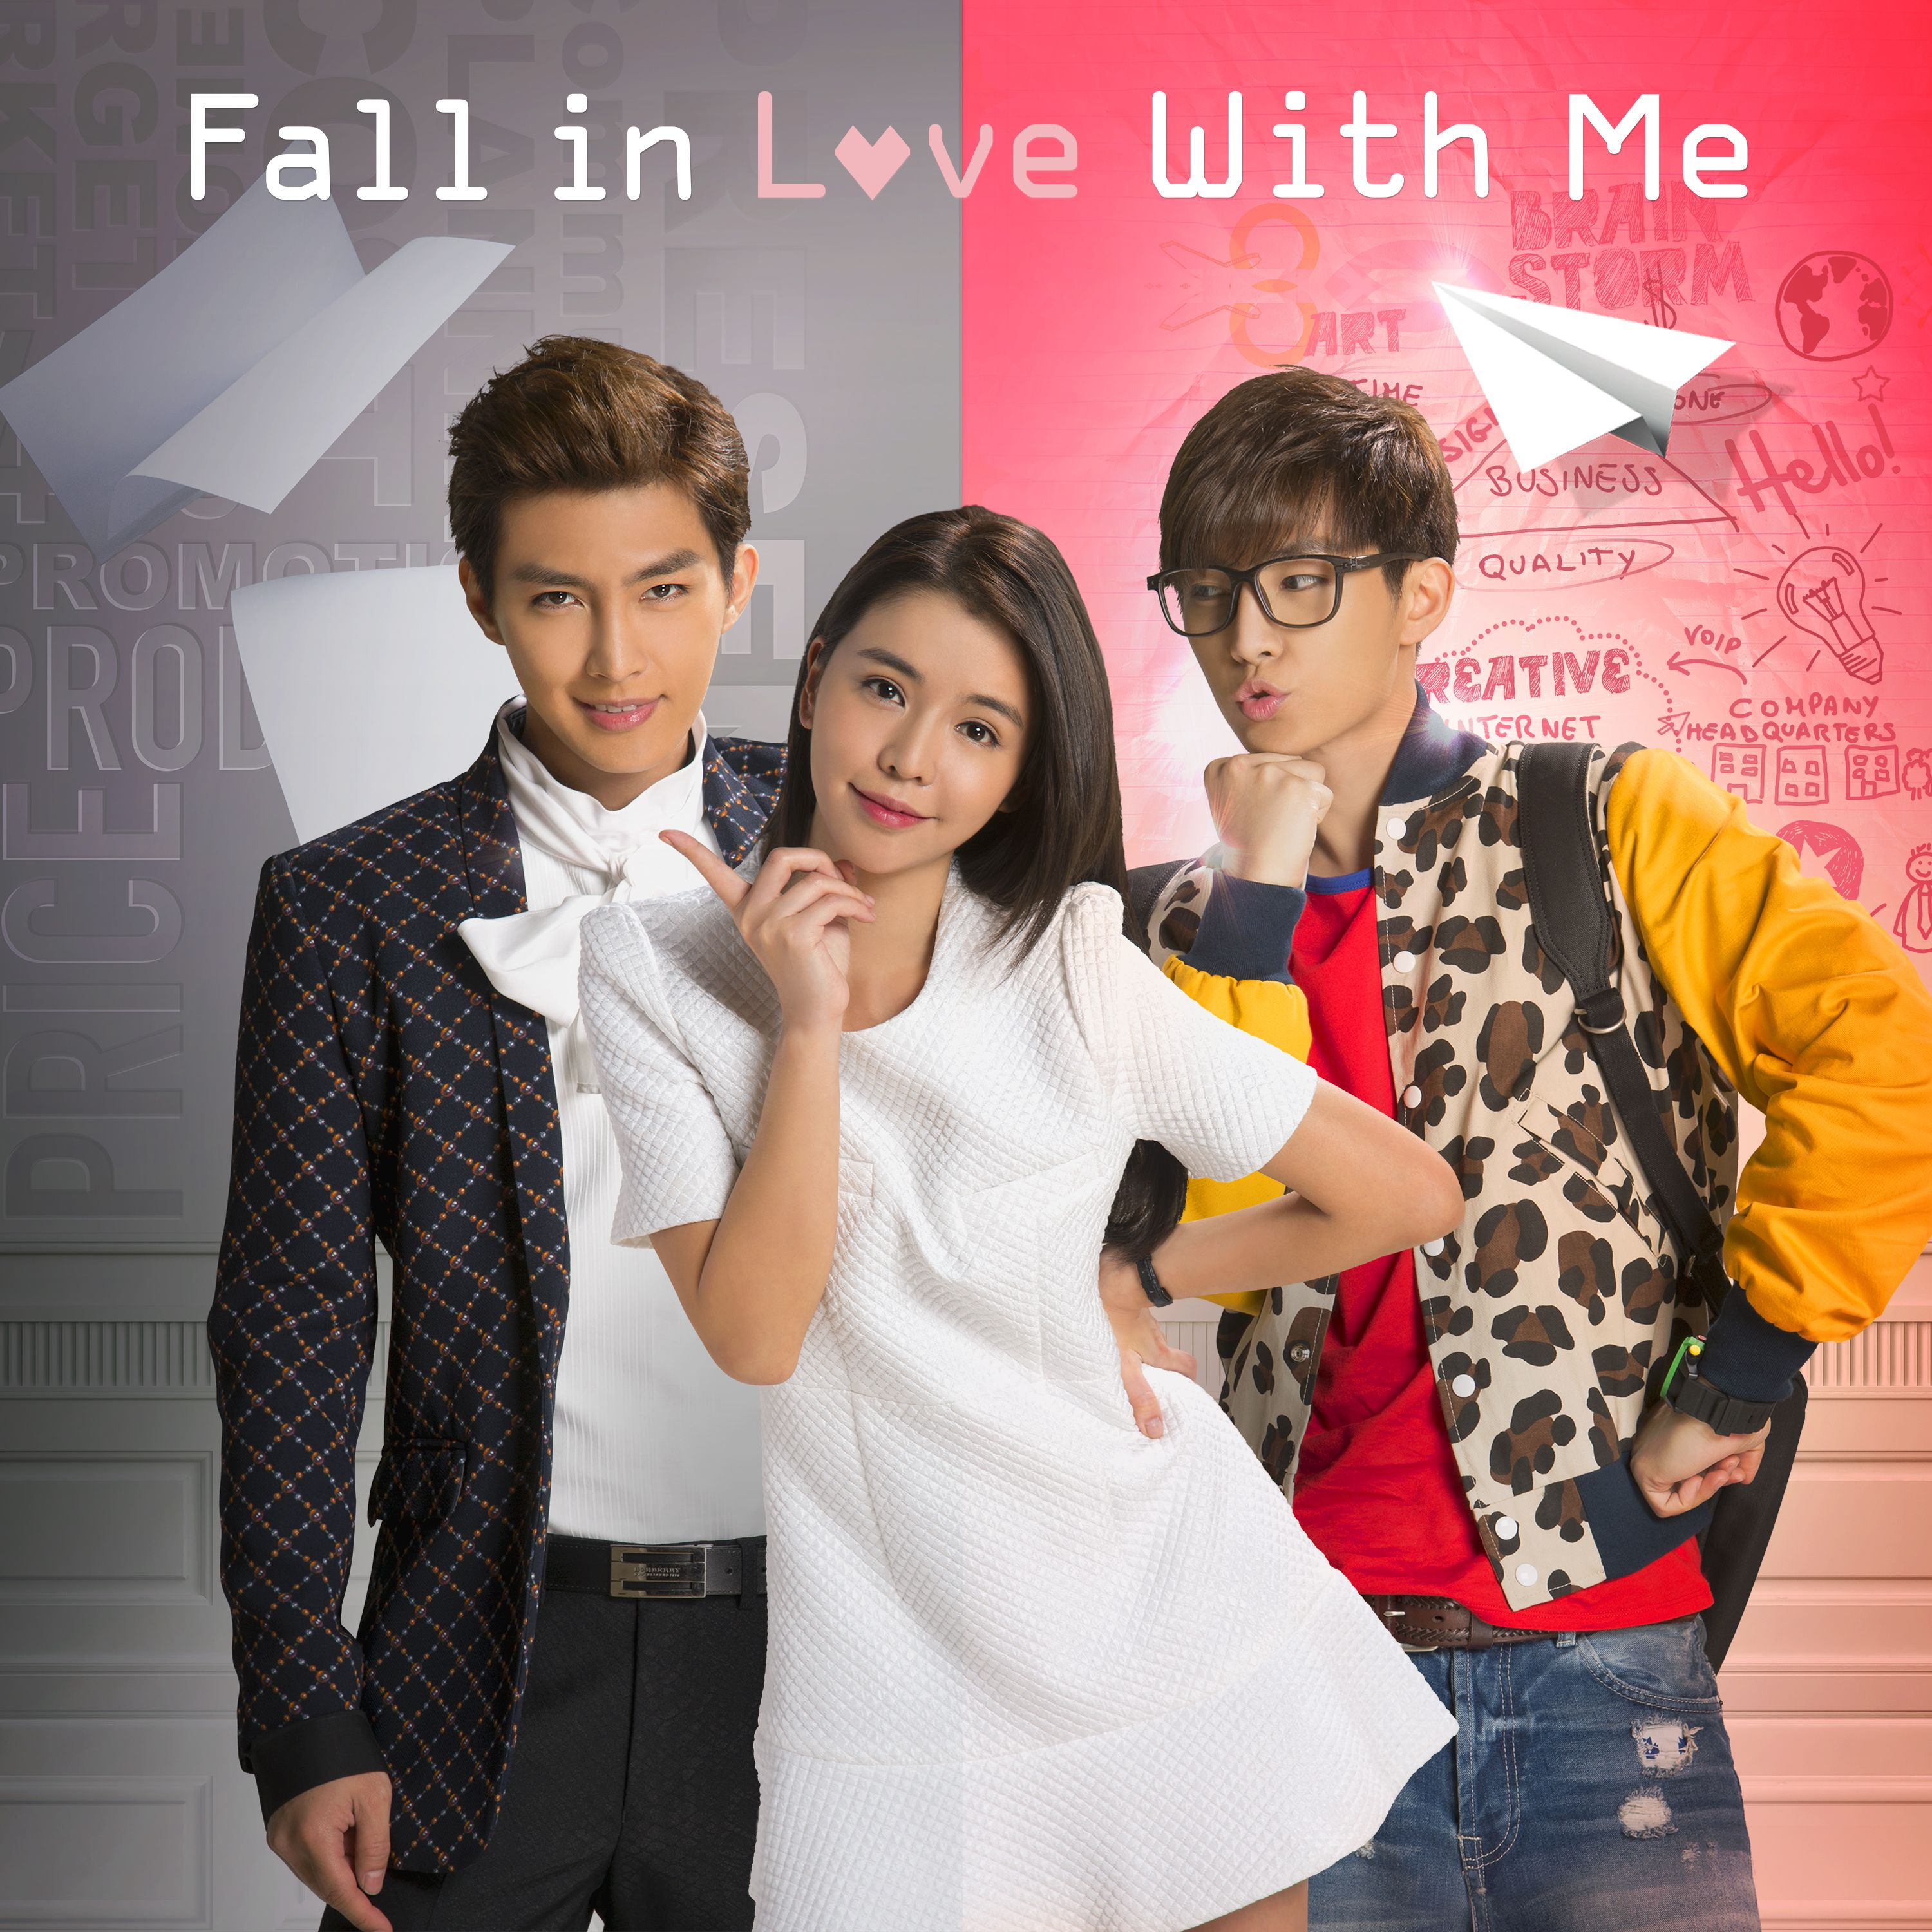 Fall in Love With Me Episode 1 - 愛上兩個我 - Watch Full